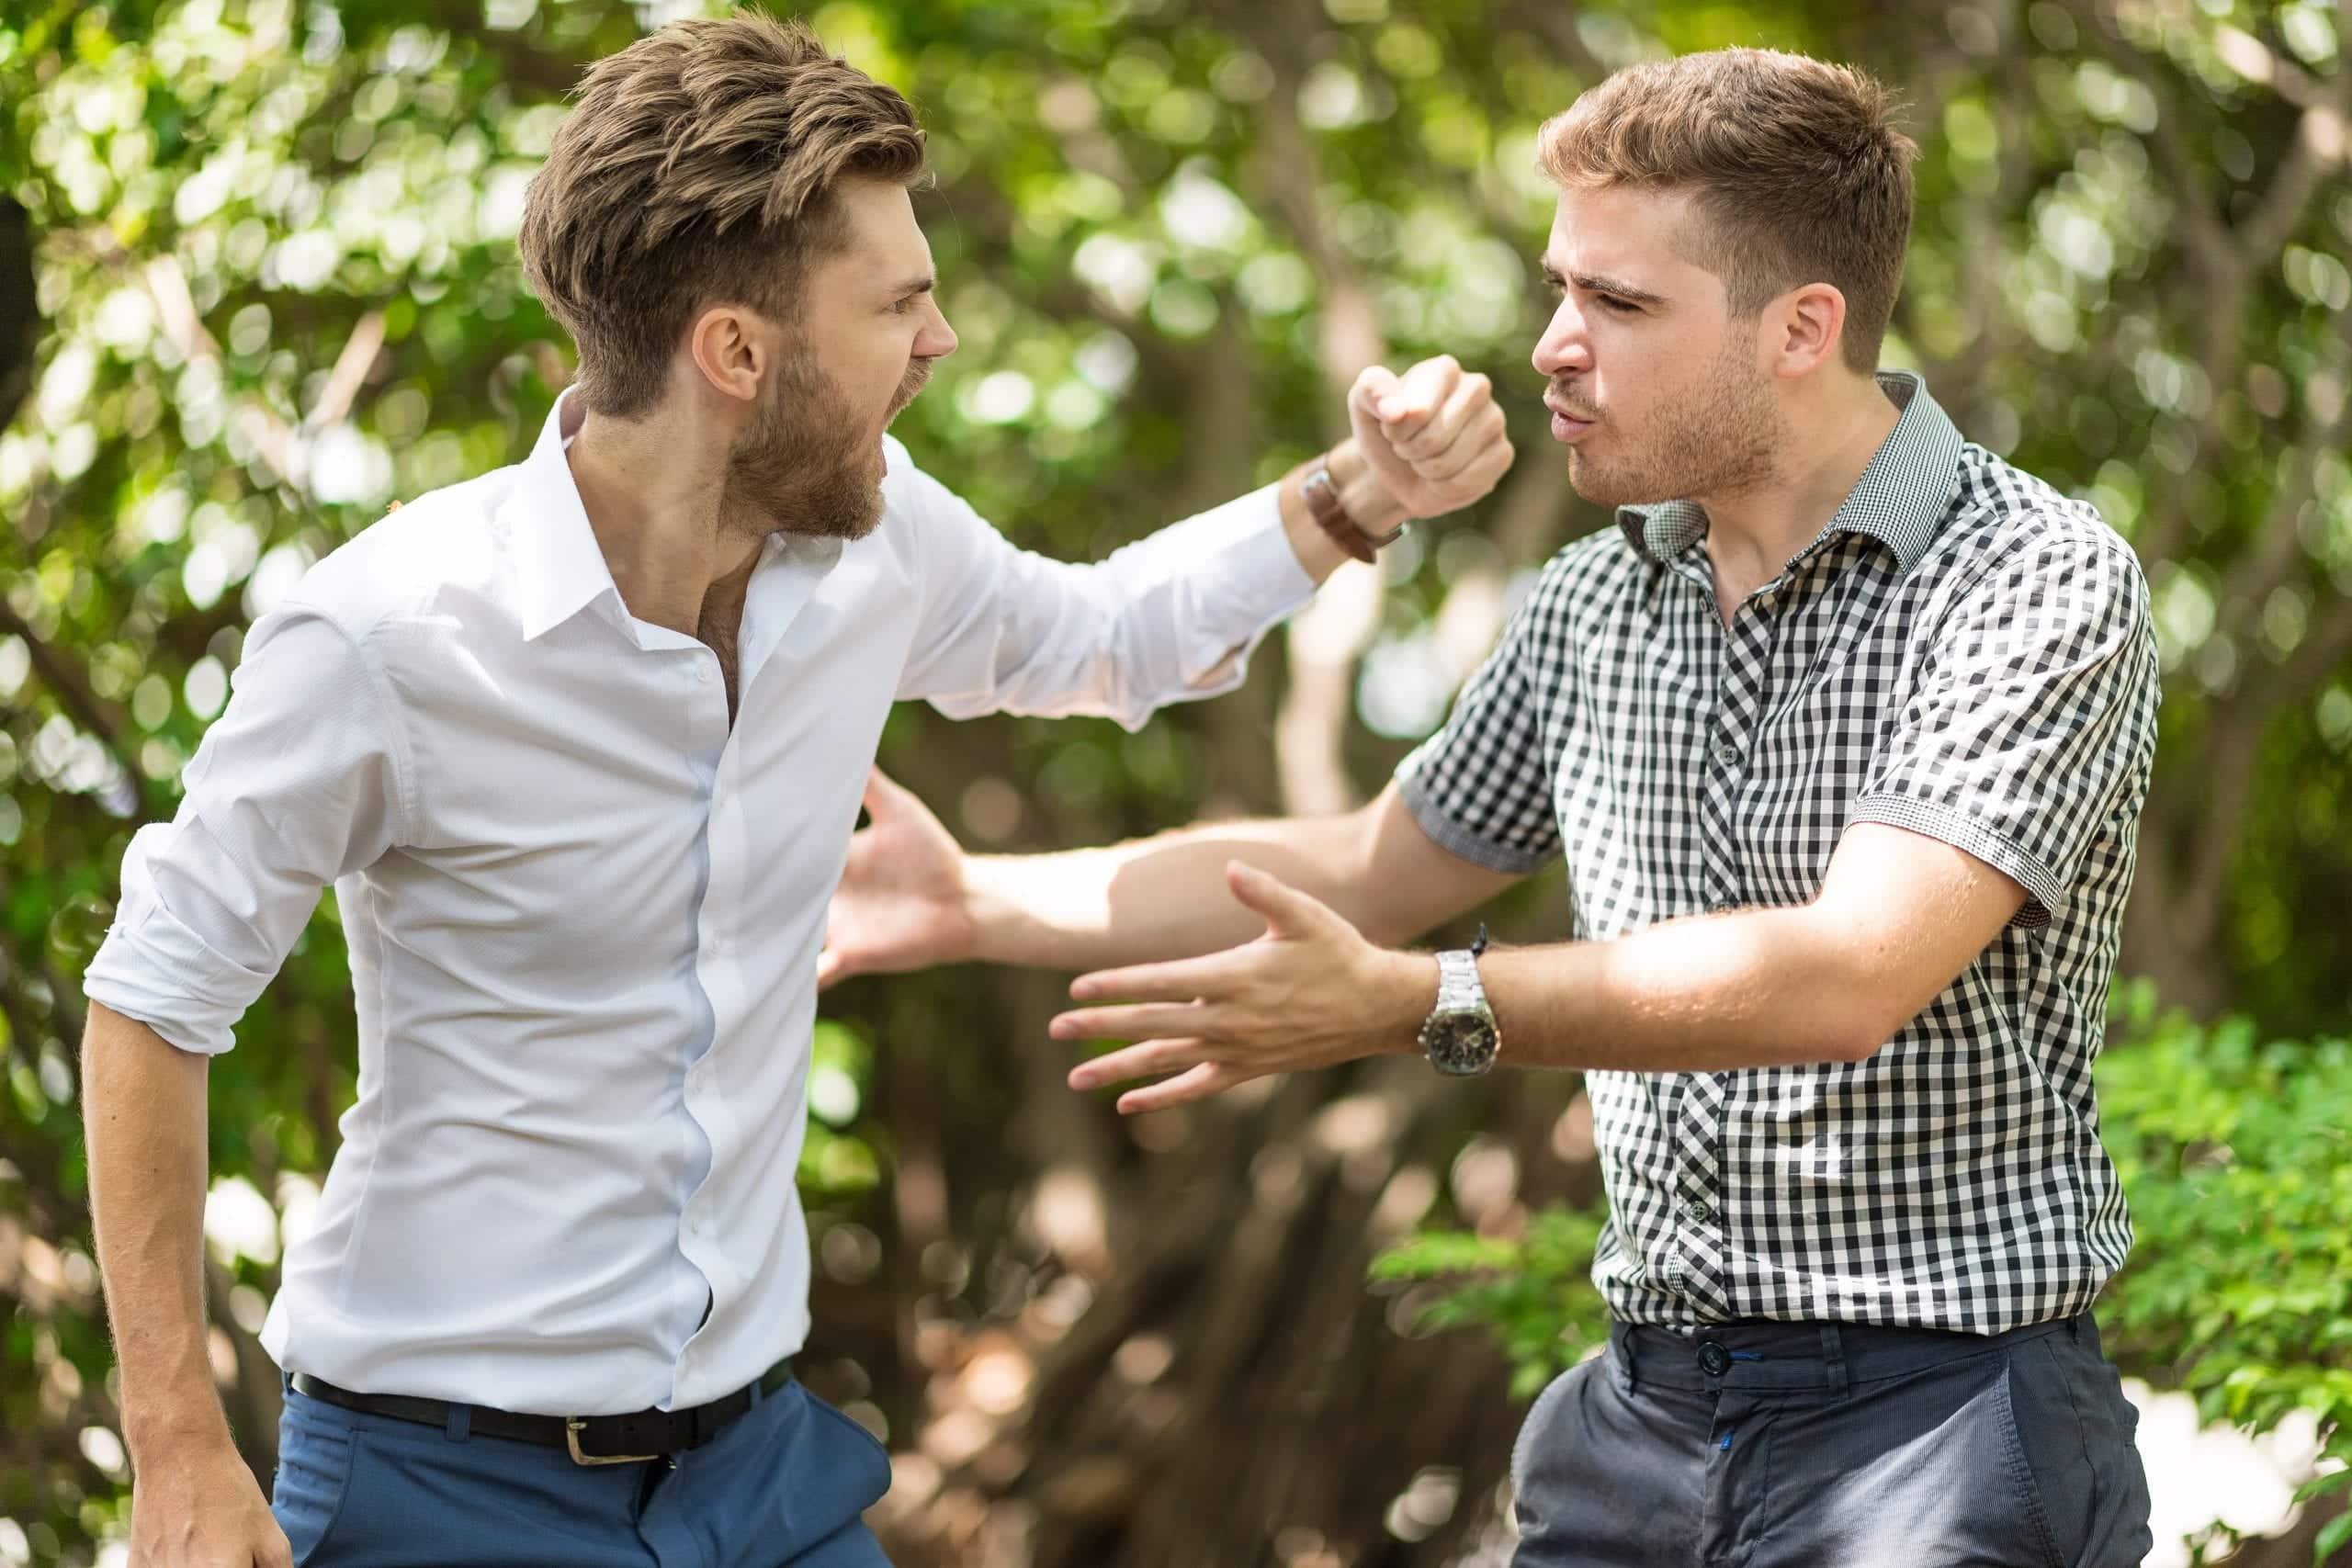 The Negatives of Conflict